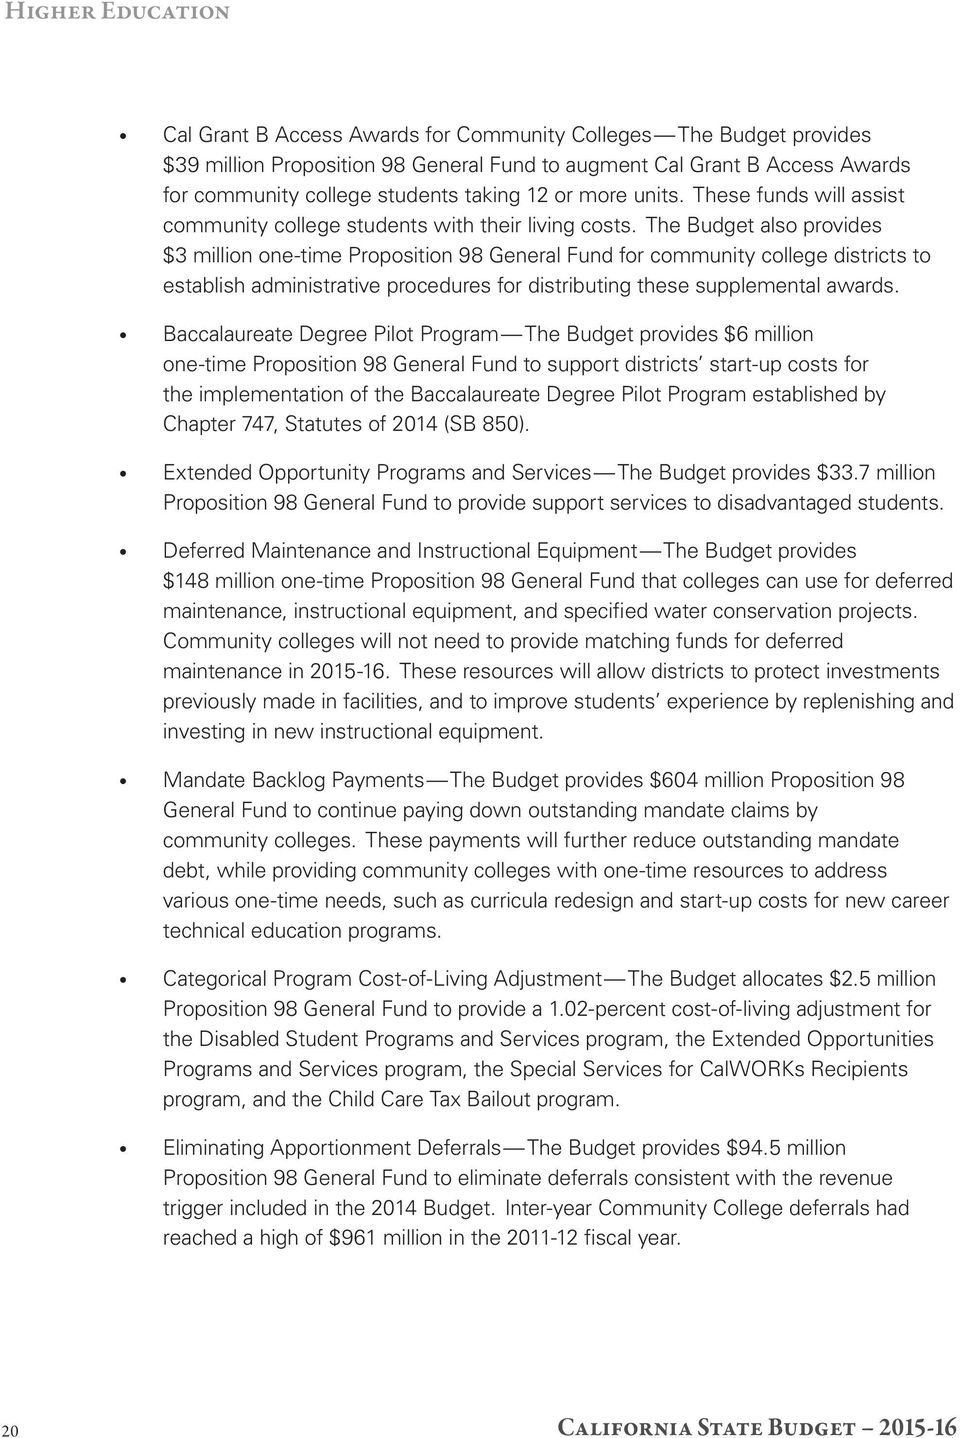 The Budget also provides $3 million one time Proposition 98 General Fund for community college districts to establish administrative procedures for distributing these supplemental awards.